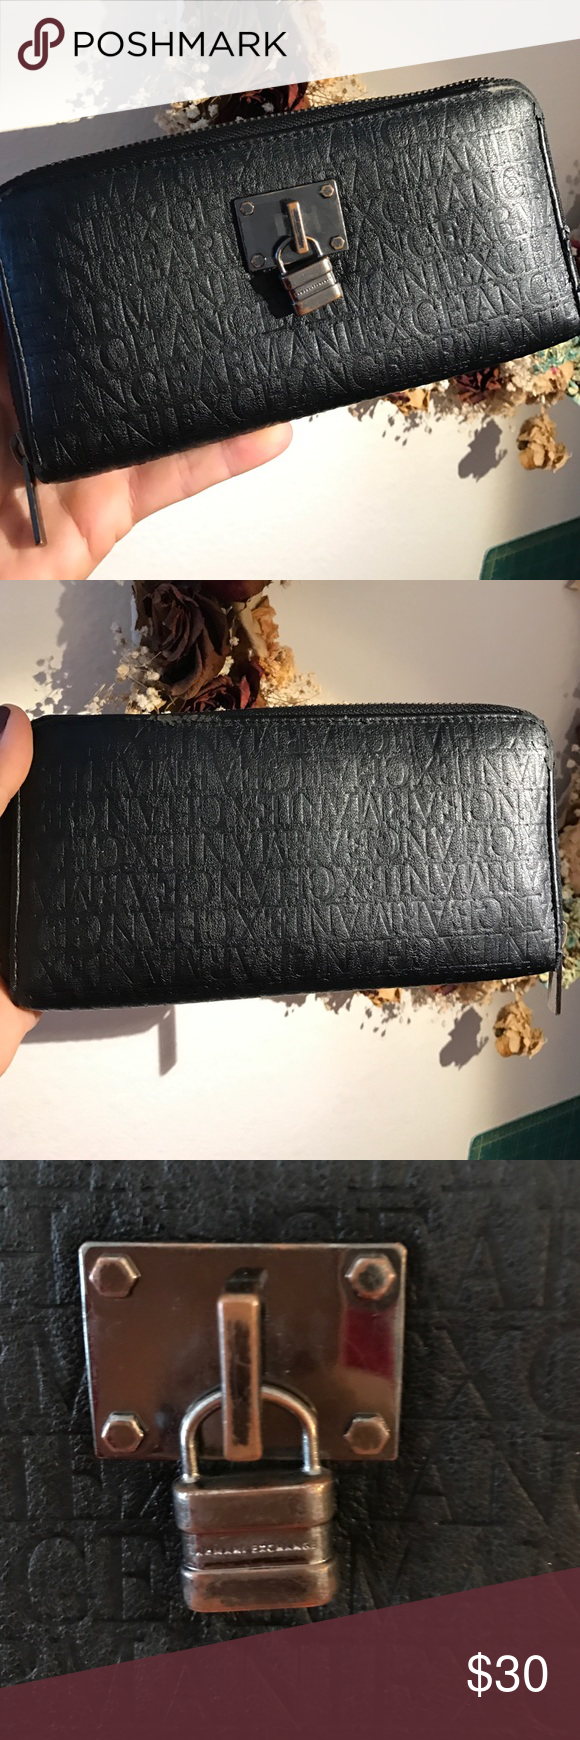 Armani Exchange Clutch Wallet Black previously adored Genuine Armani Wallet  Clutch dimensions  4